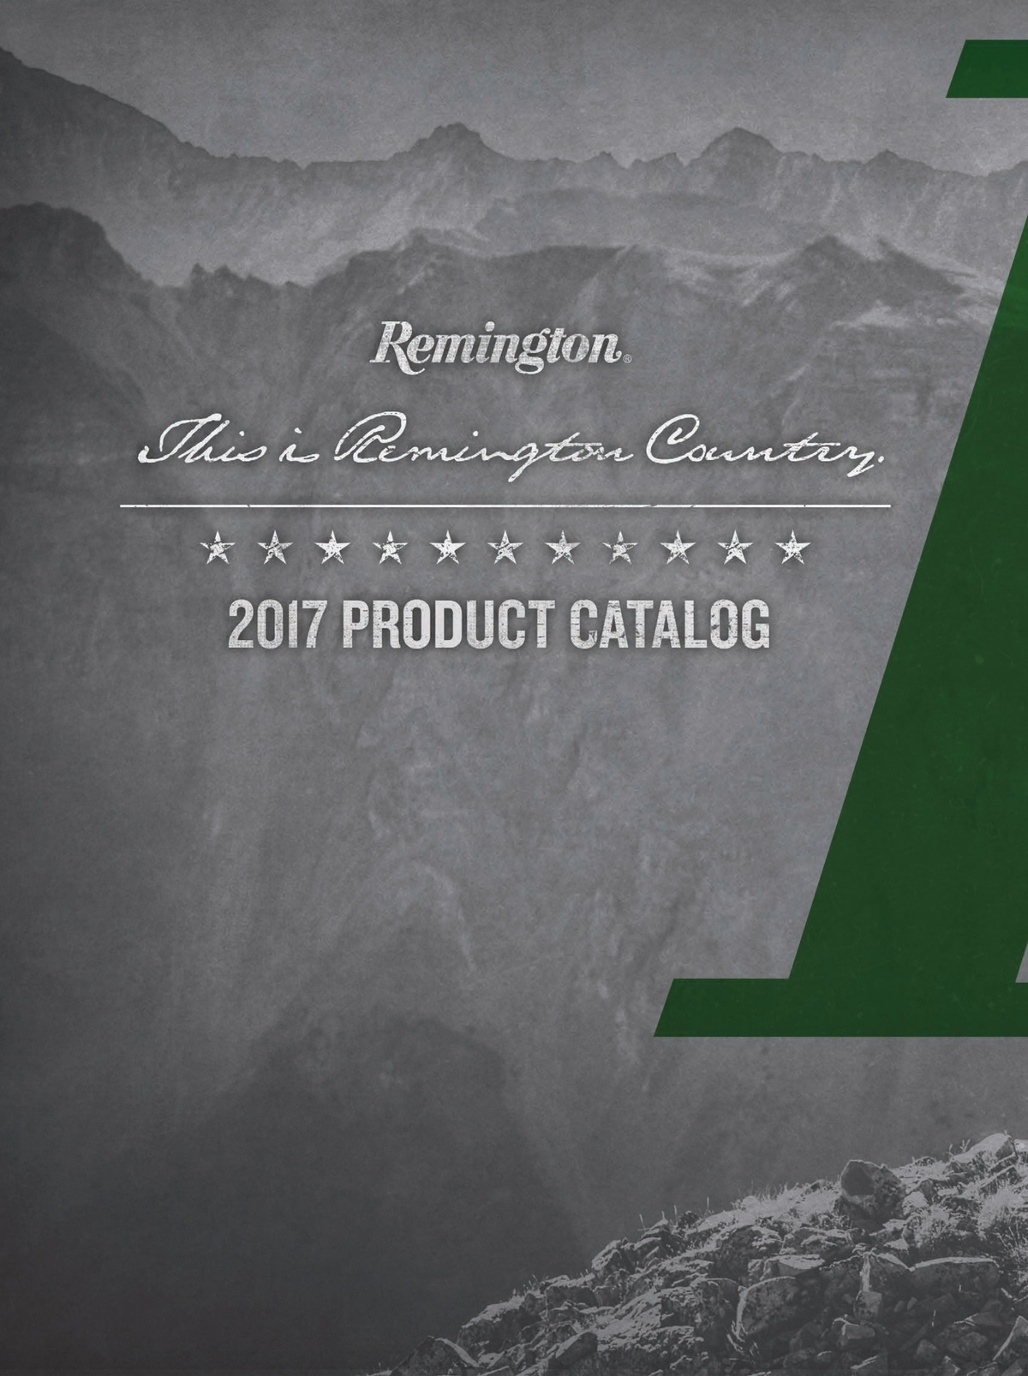 2017 Remington Digital Catalog